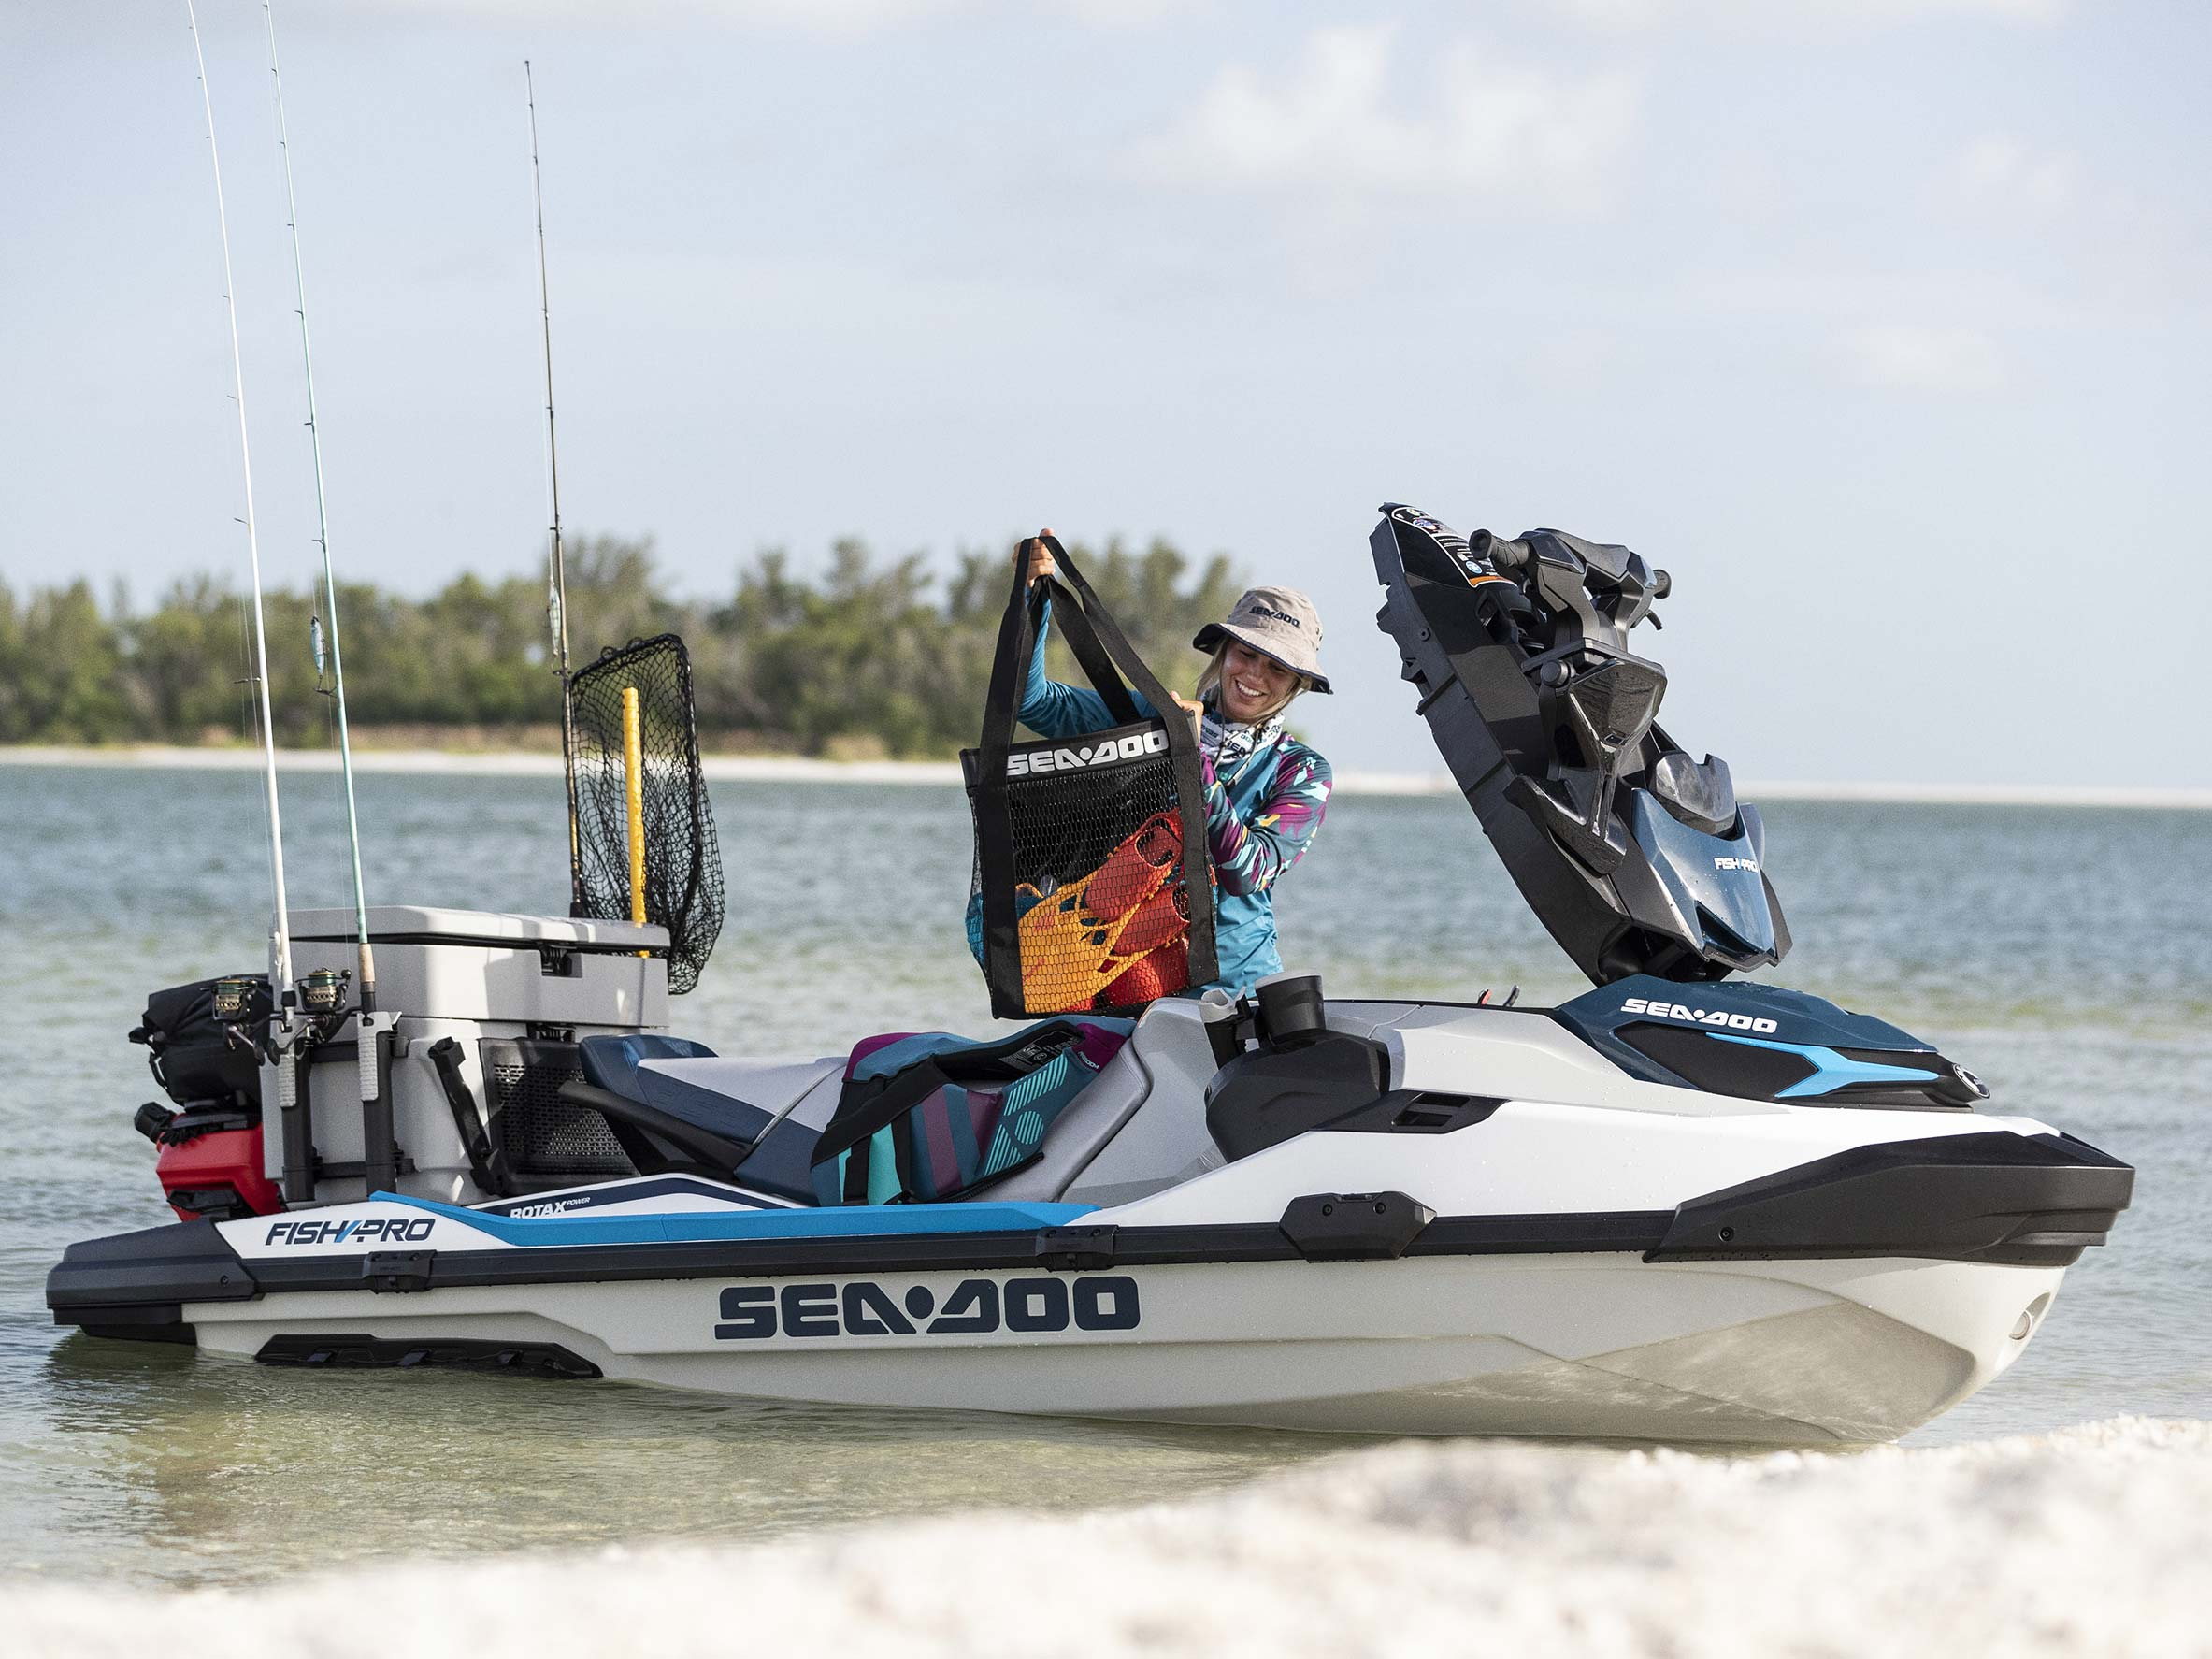 Plataforma traseira estendida do Sea-Doo Fish Pro